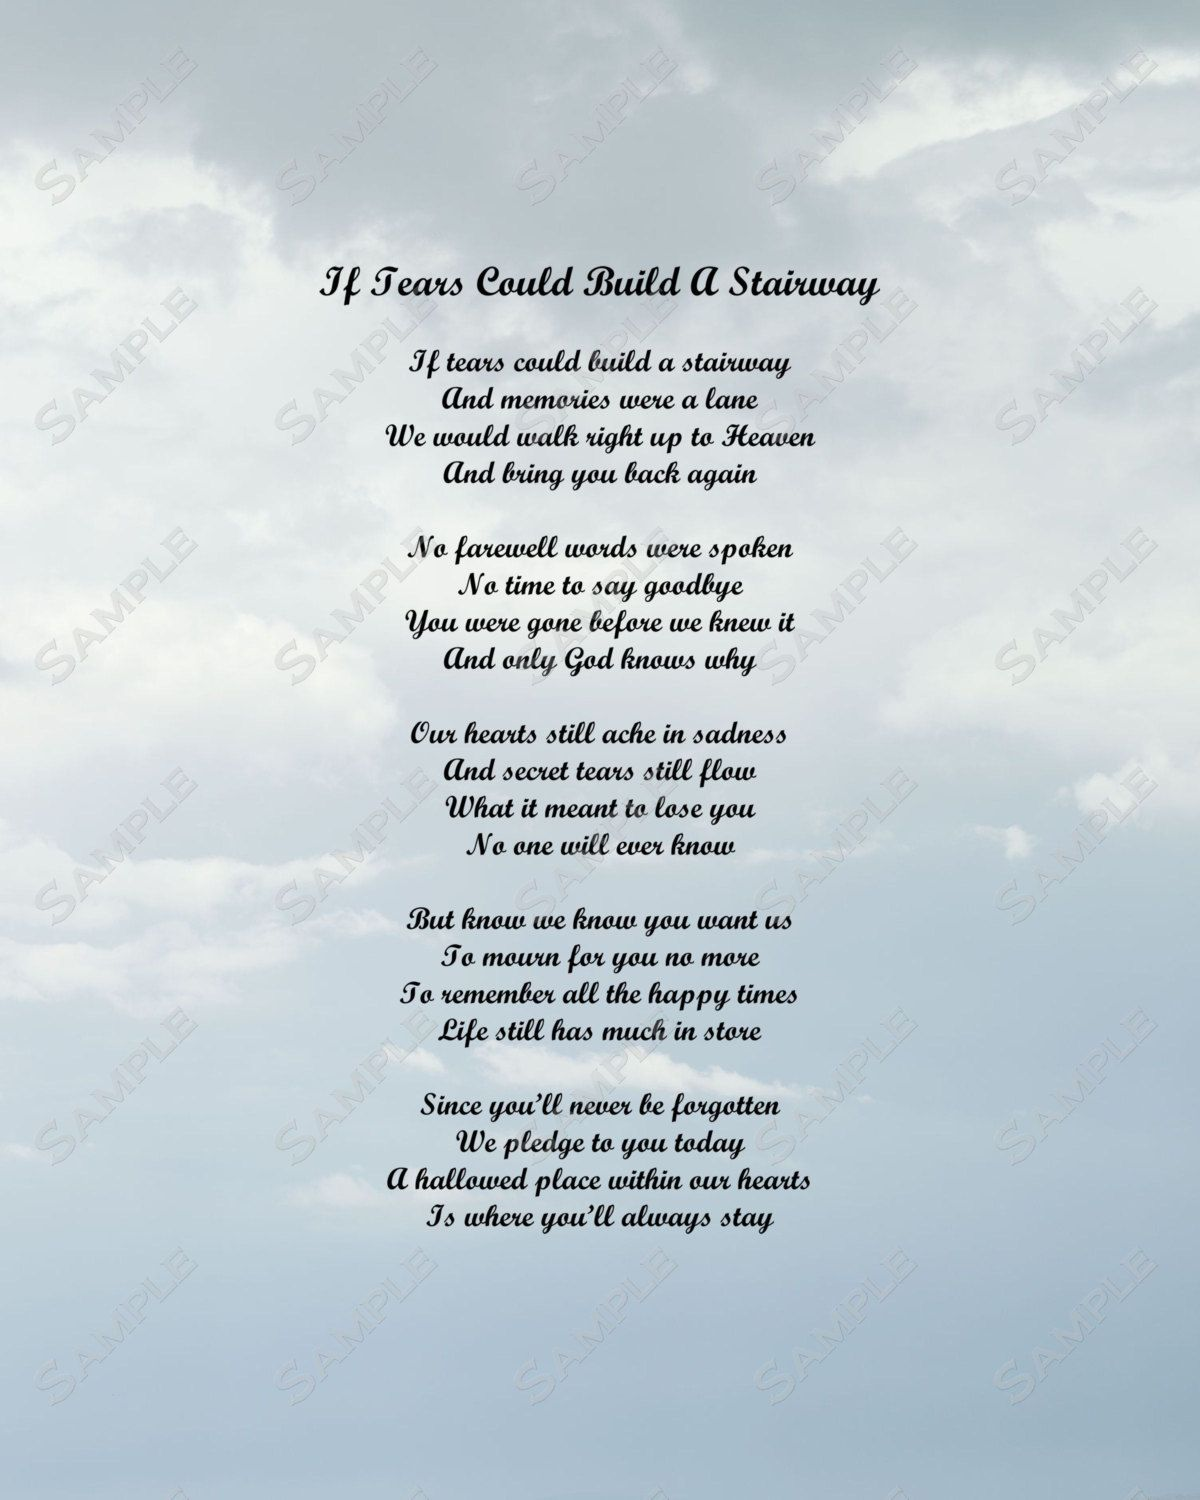 Inspirational Quotes About Death Of A Grandmother: Grandmother Poems For Funeral - Google Search